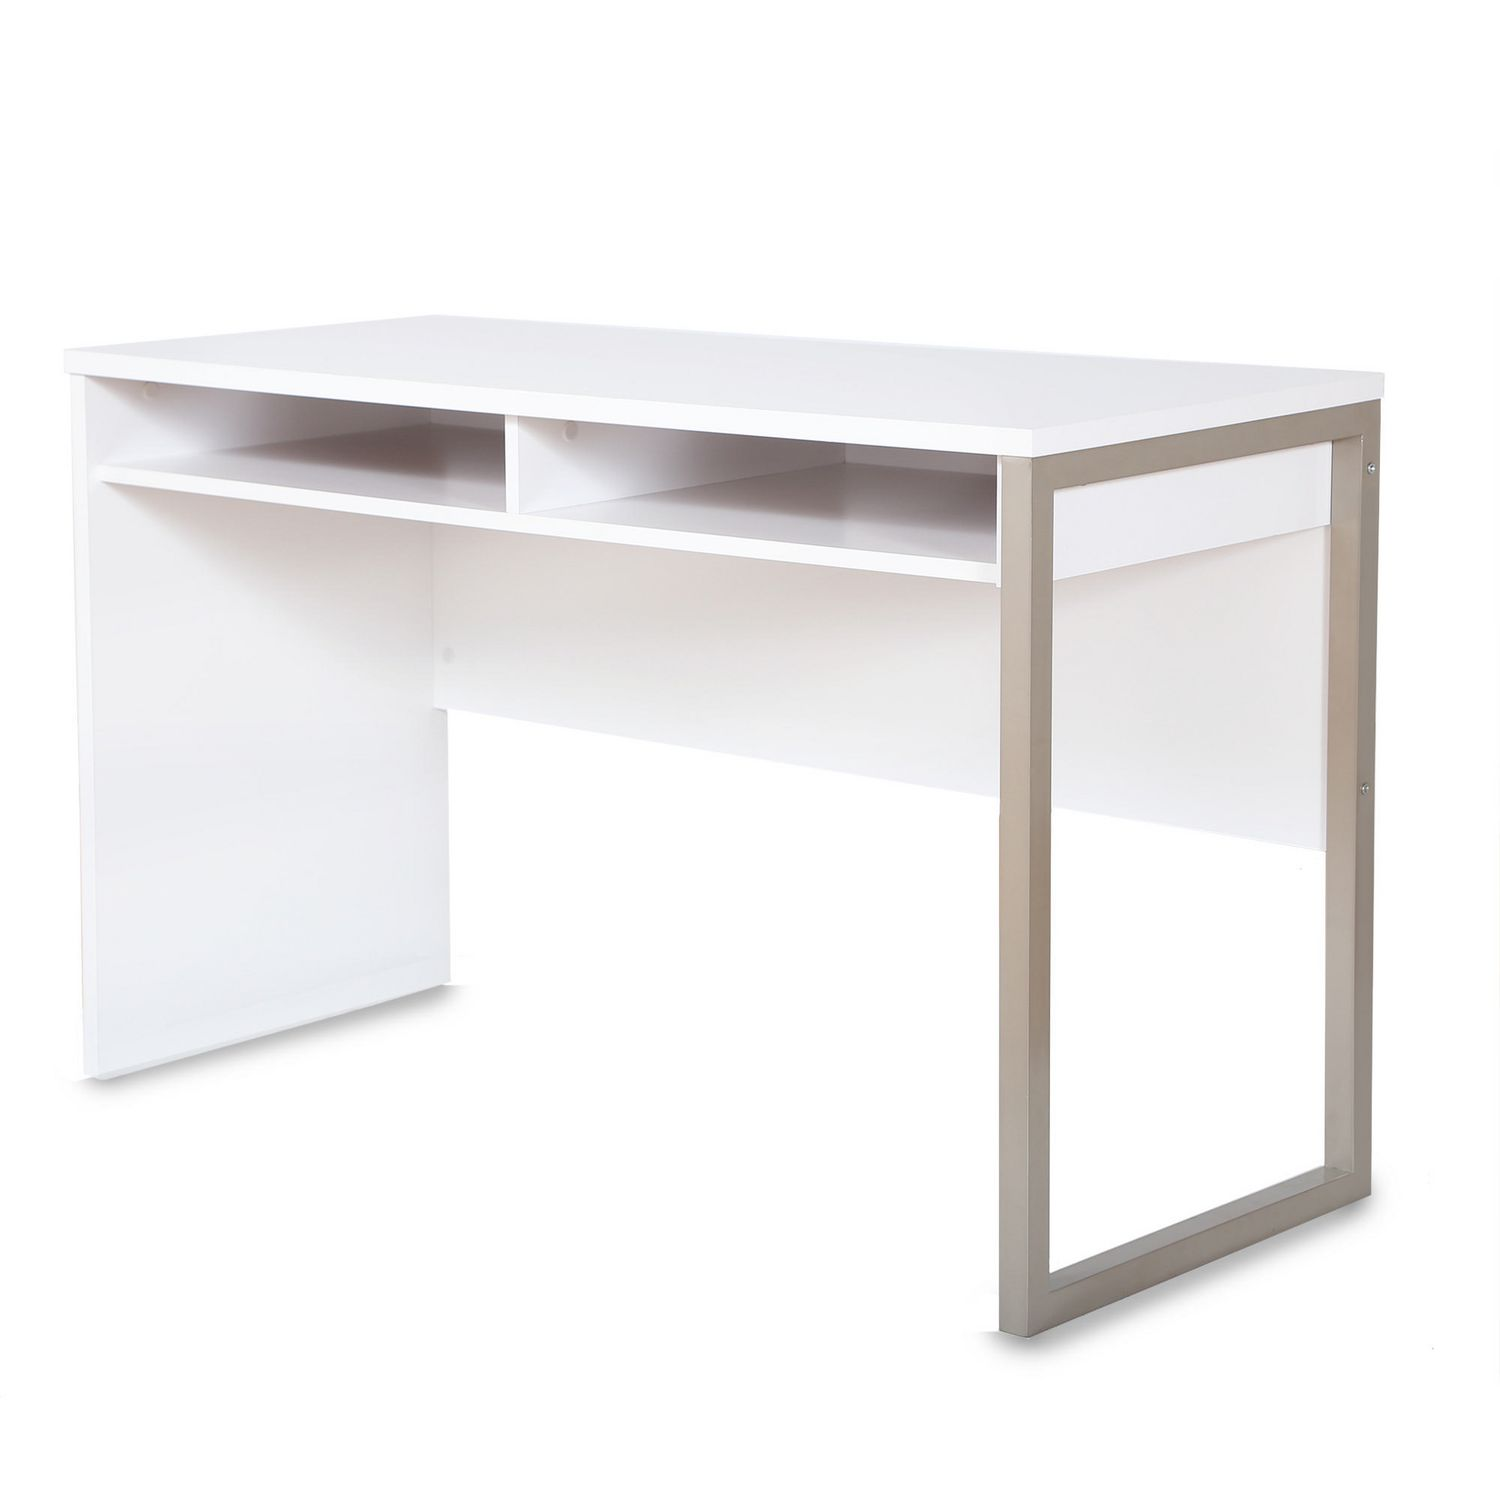 styles white like to good and browse desks or p delmaegypt glass on shop desk computer by finish modern